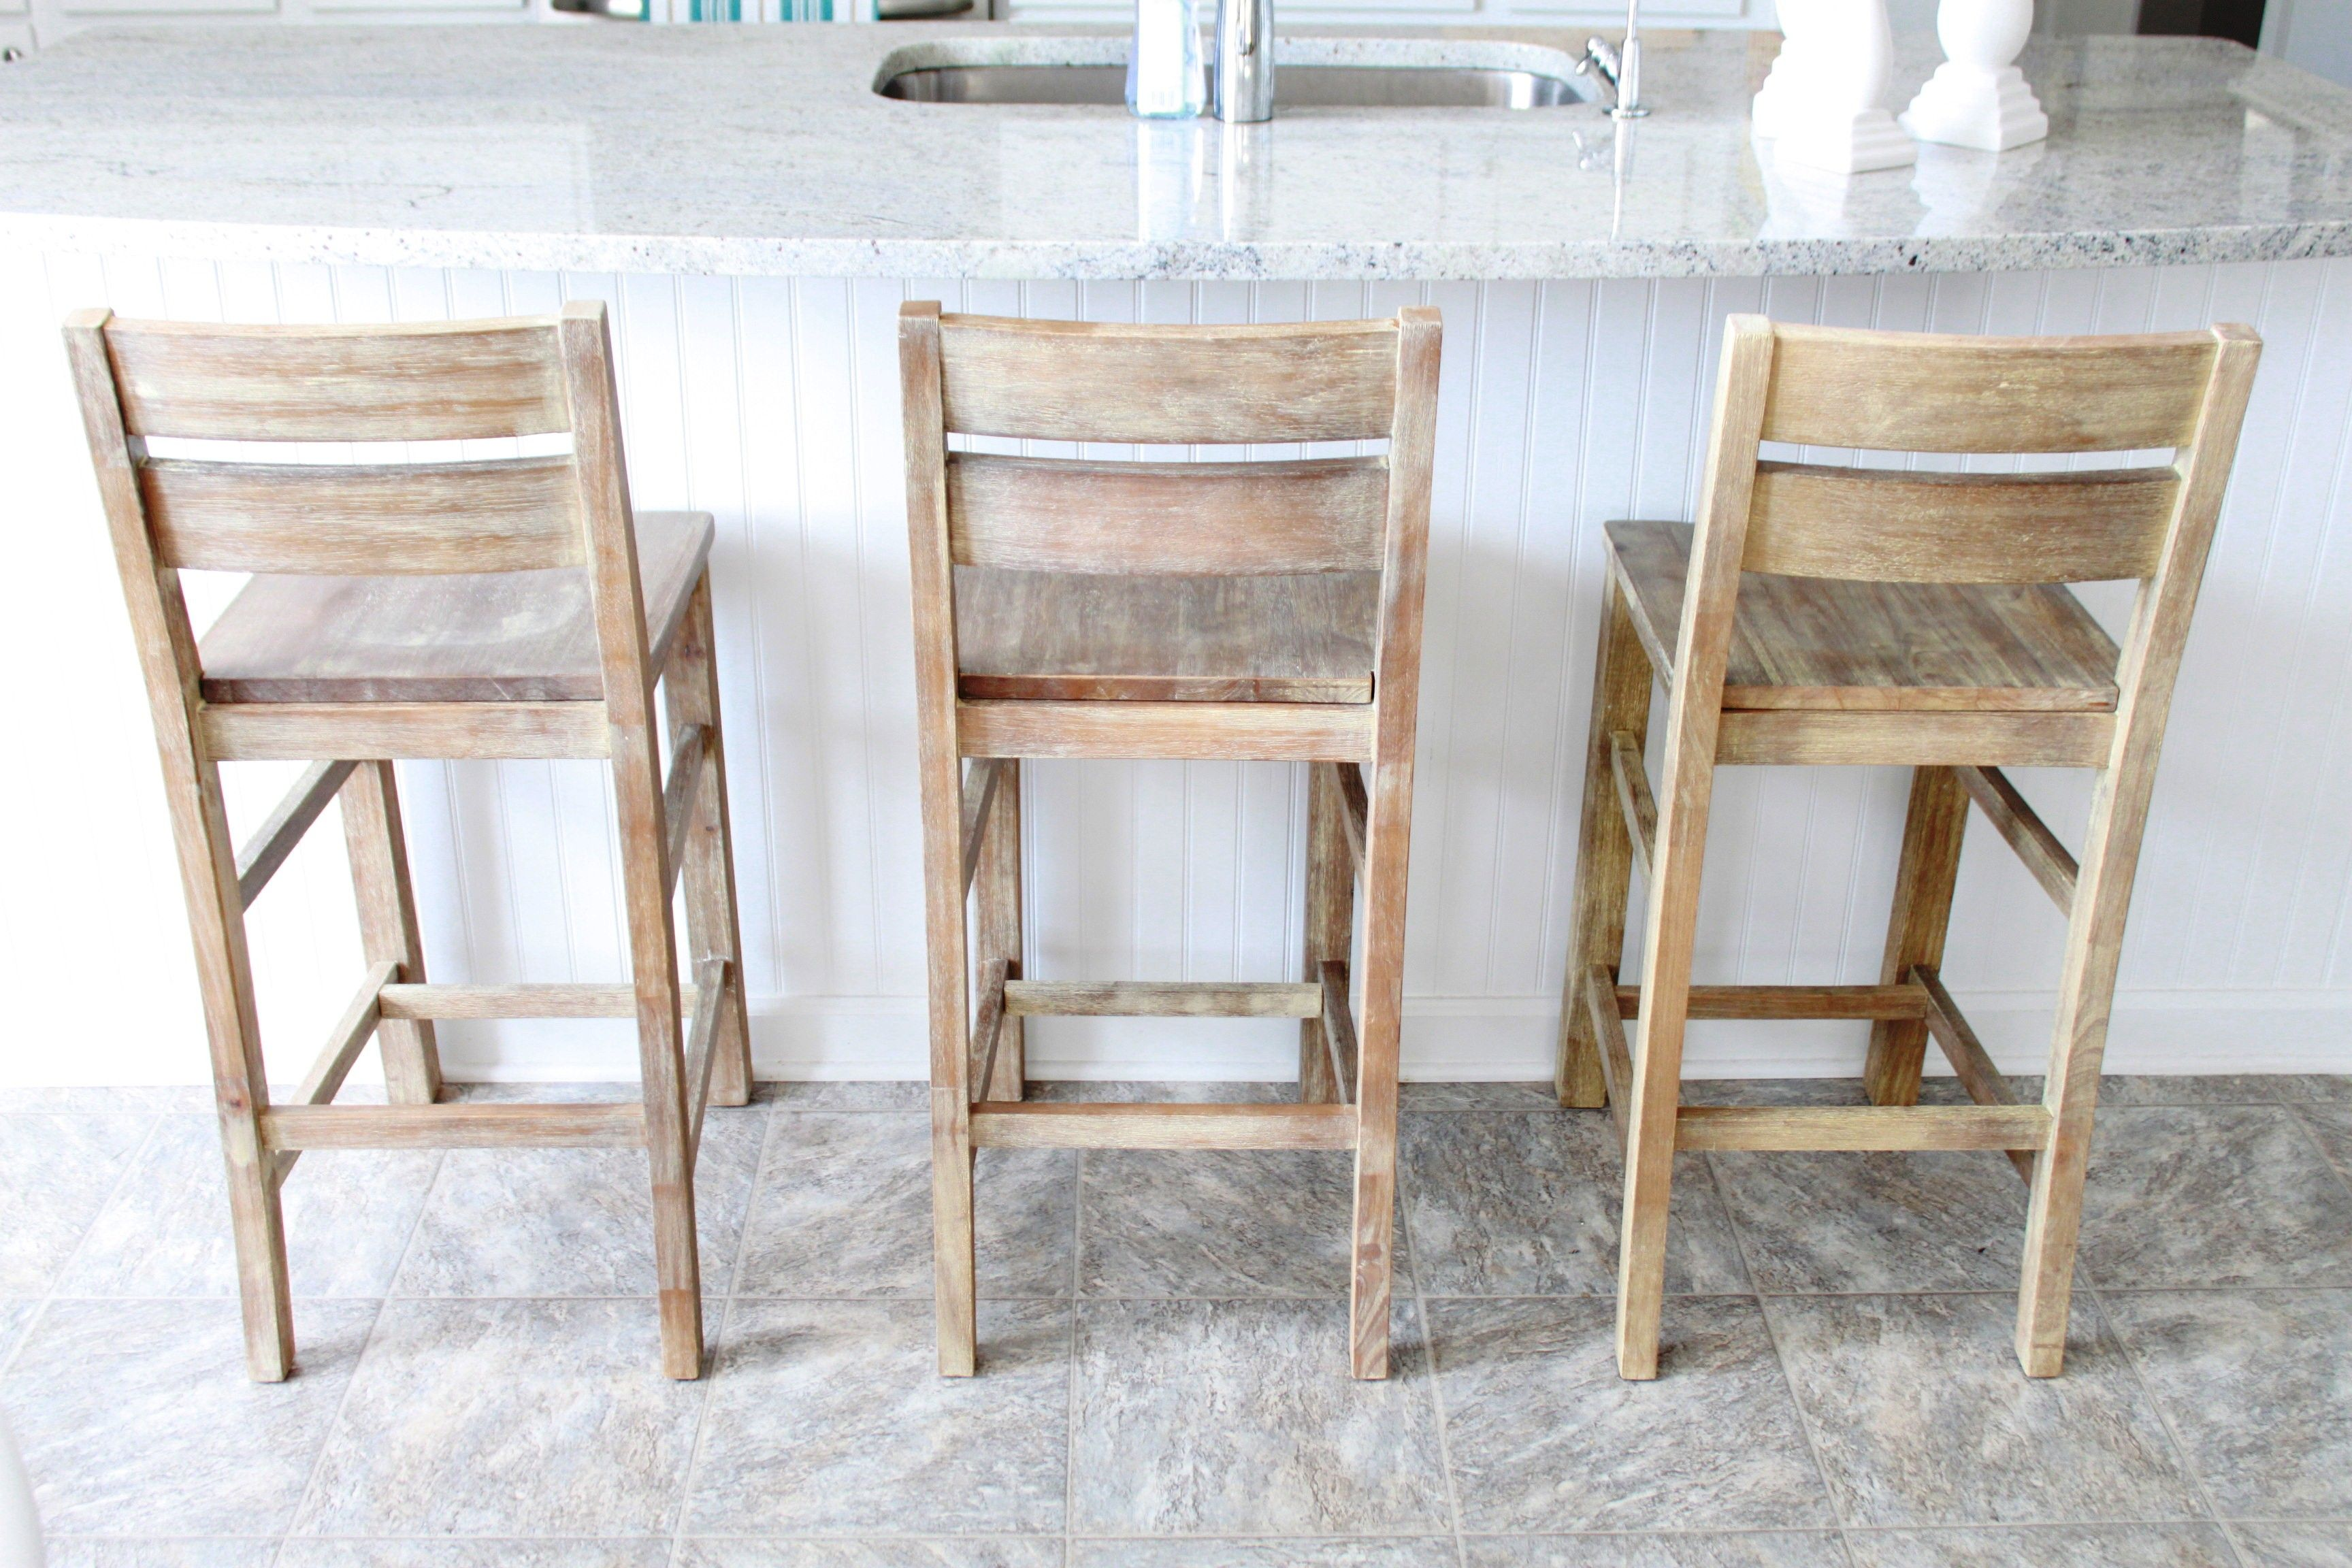 Kitchen Island Chairs Stools Kitchen Island Chairs With Backs | We Settled On These